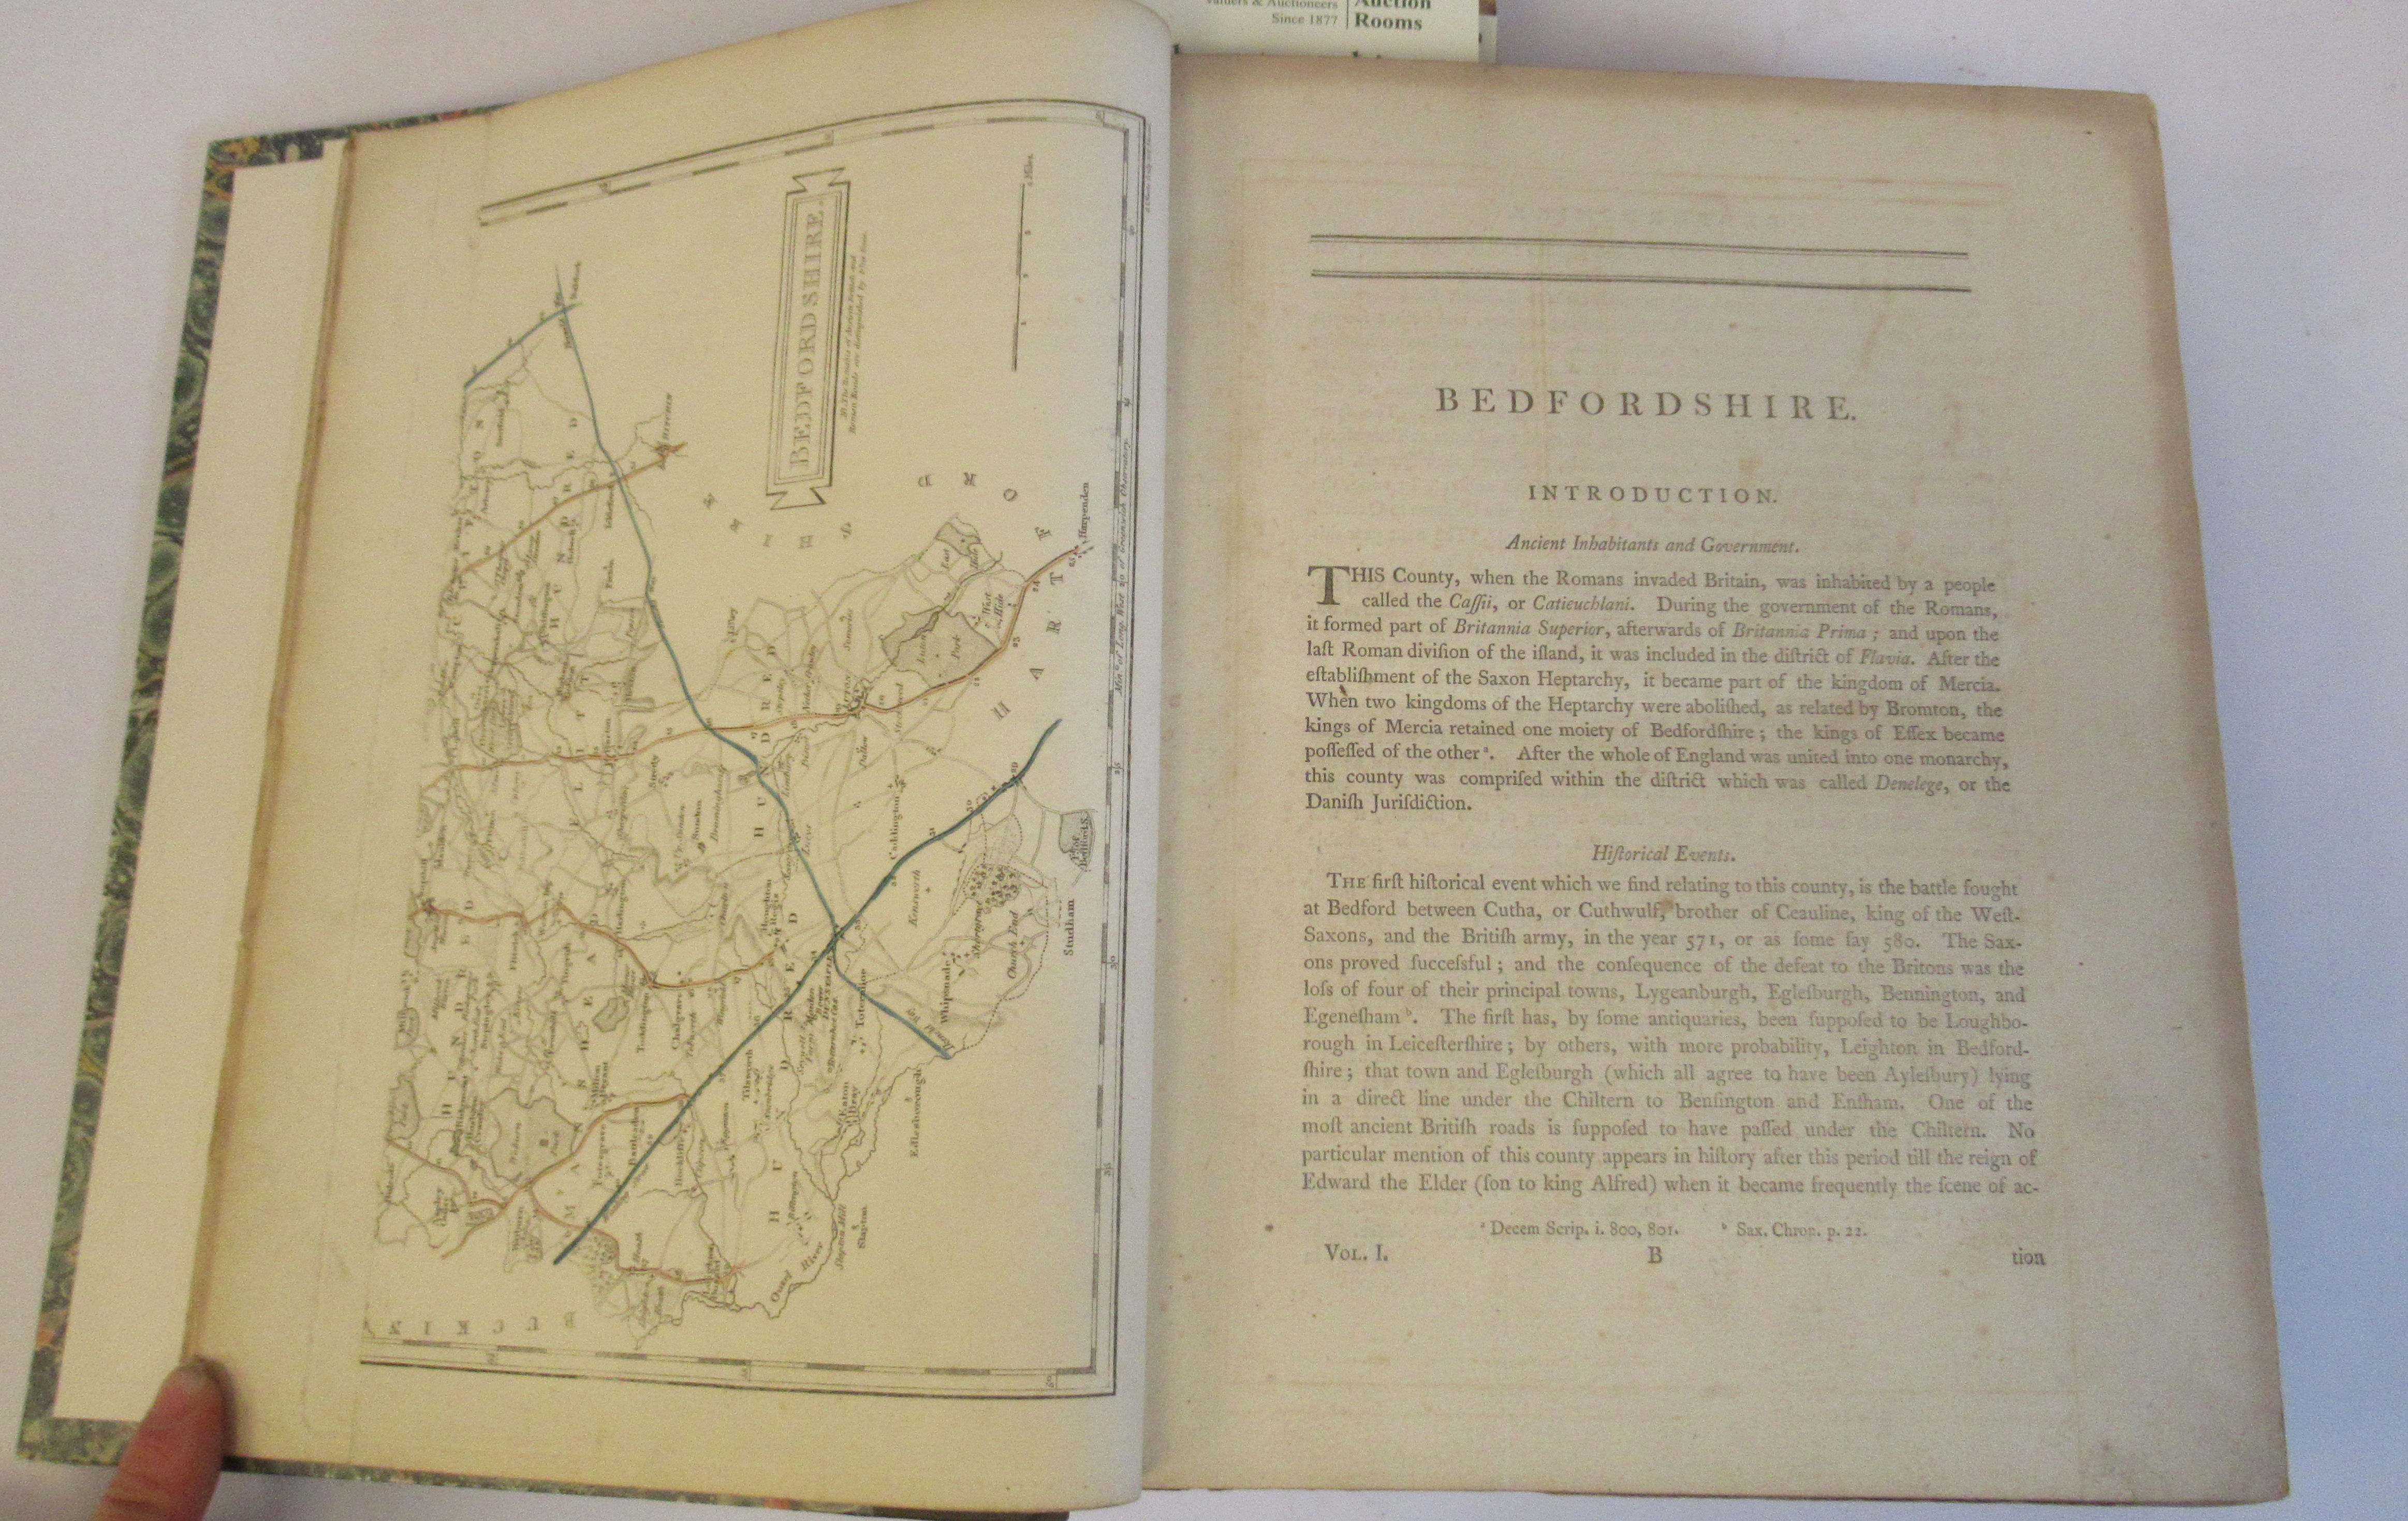 Book: 'Magna Britannia' (first volume) 'Bedfordshire & Buckinghamshire' by Danial Lysons, 44 plates, - Image 2 of 9